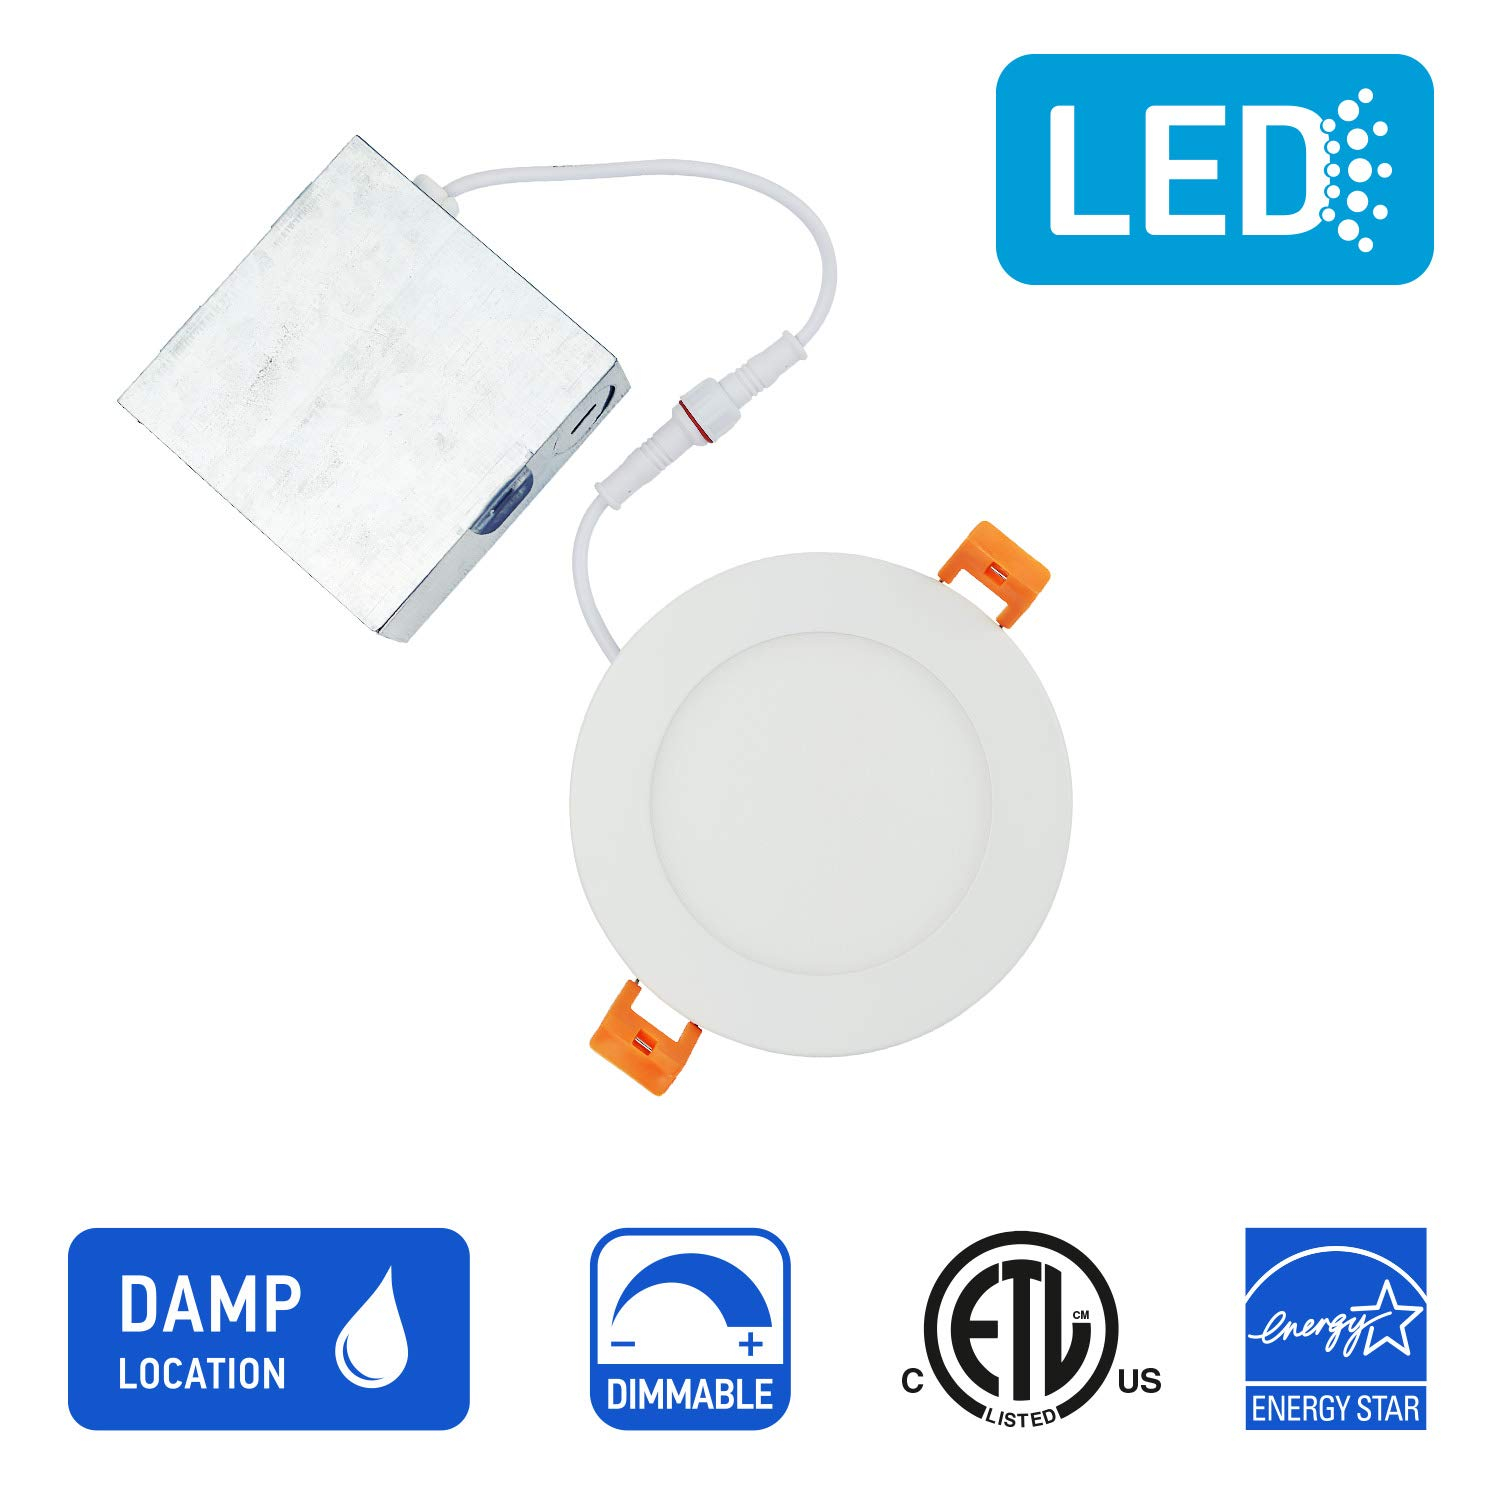 OSTWIN 4 inch LED Recessed PROFILE SLIM ROUND PANEL Light with Junction Box, Dimmable, 12W (90 Watt Replacement), 4000K (Warm White), 900 Lumens, No Can Needed, ETL and Energy Star Listed